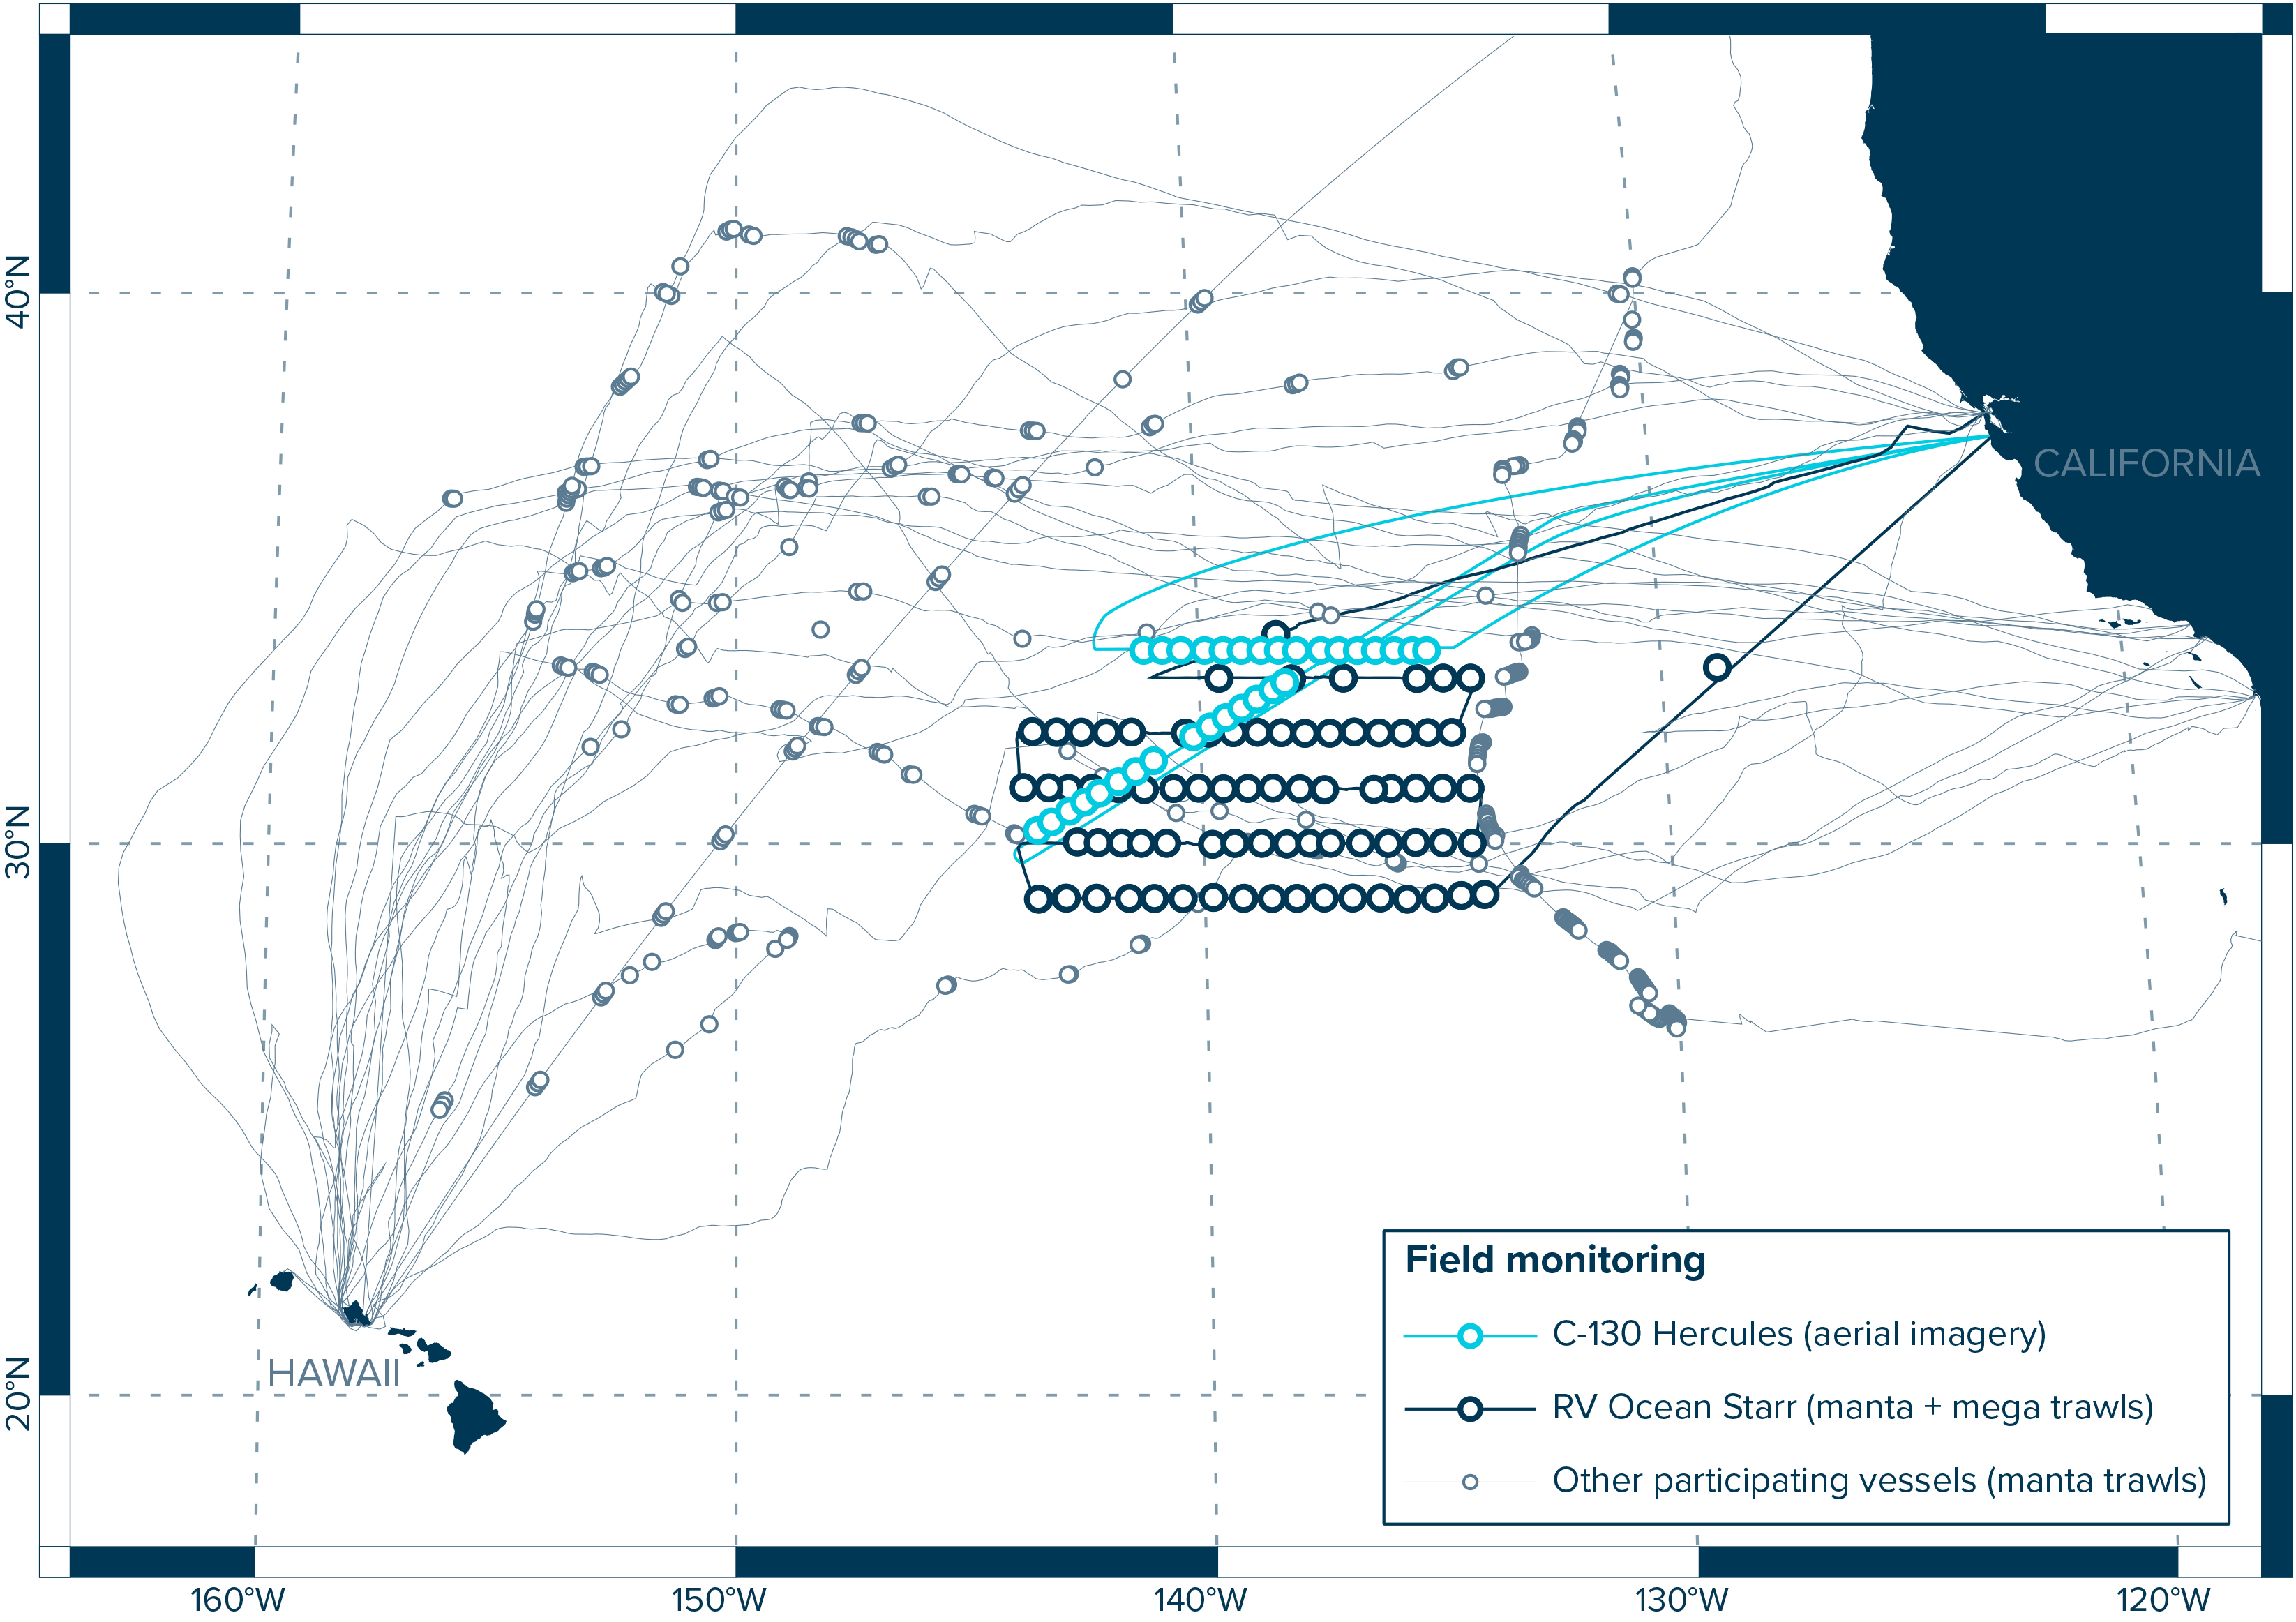 Field monitoring effort. Vessel (grey and dark blue lines) and aircraft tracks (light blue lines) and locations where data on buoyant ocean plastic concentrations were collected (circles)